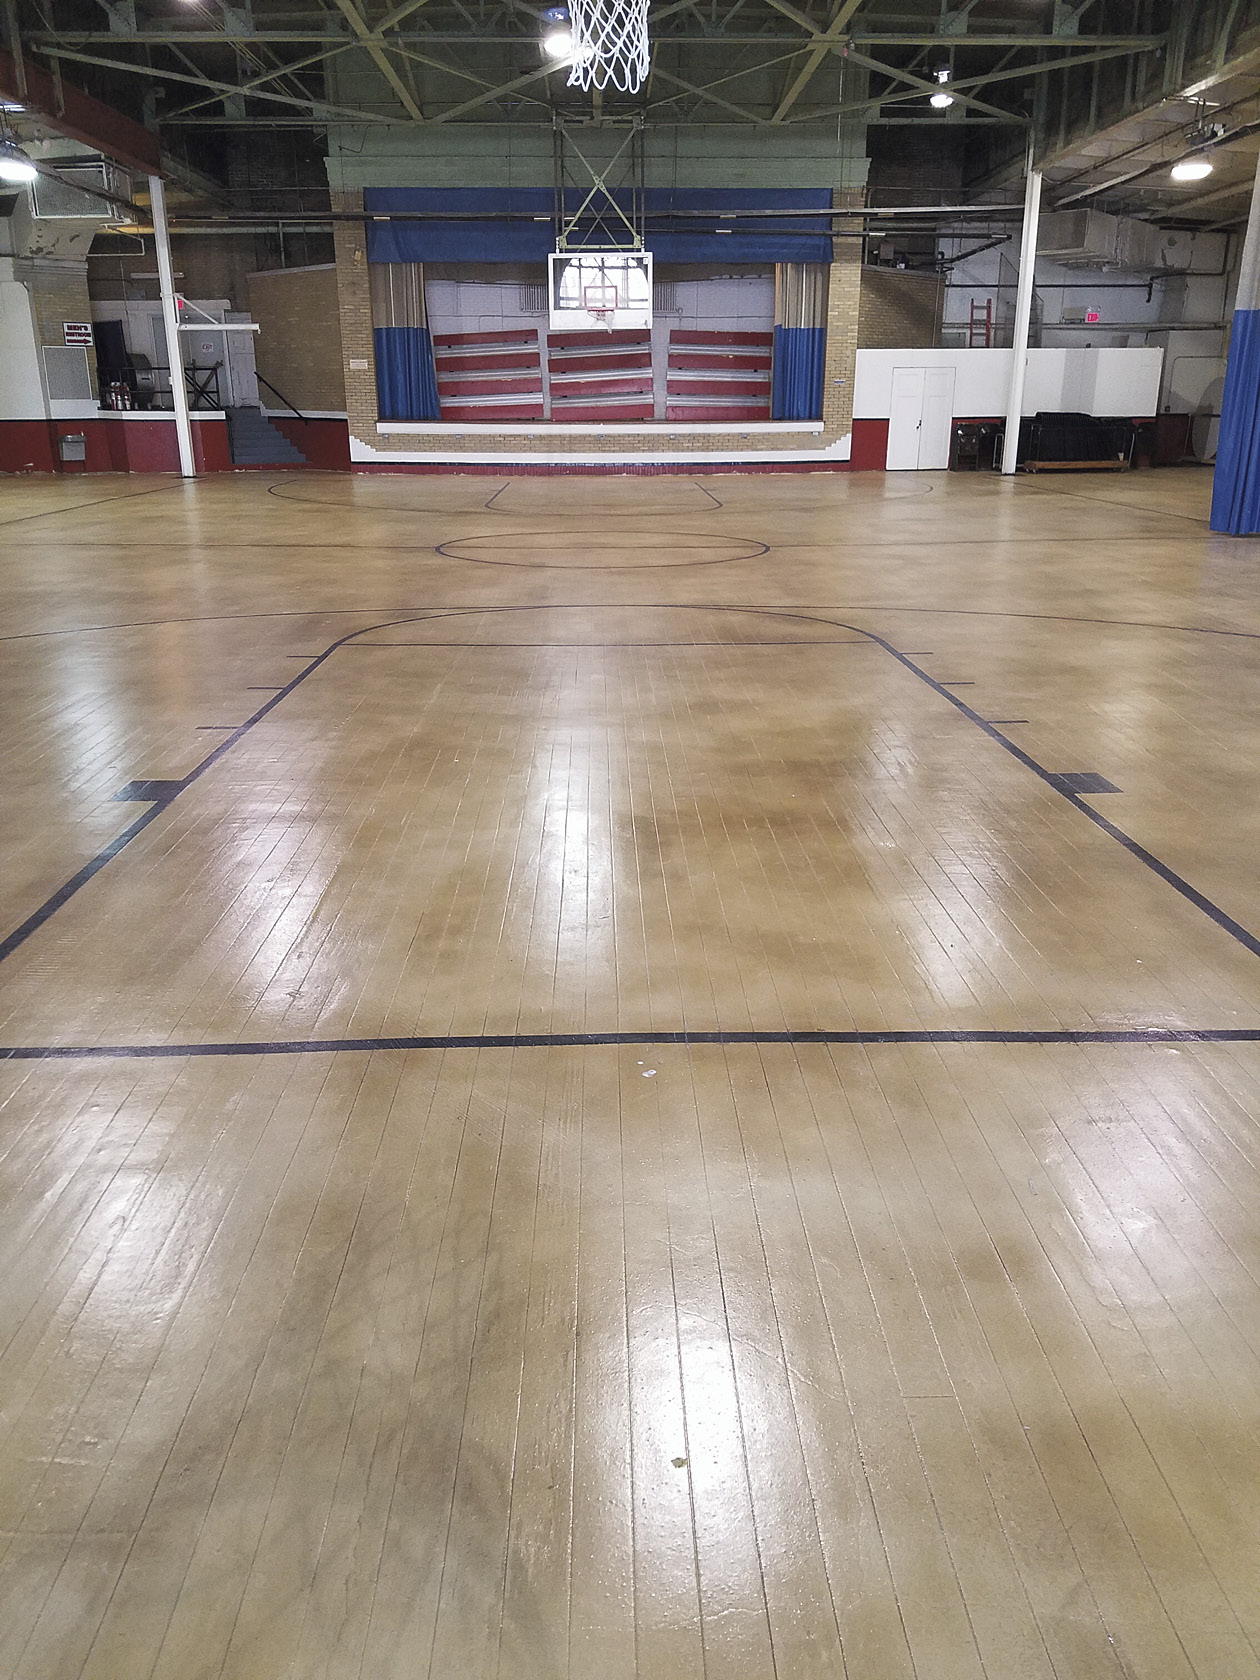 So it was quite a swoosh in his hoop when Bell landed the contract to resurface the 10,000-square-foot floor of the old gym, which had been acquired by the town from the YMCA and was now the Henry Township Community Center.